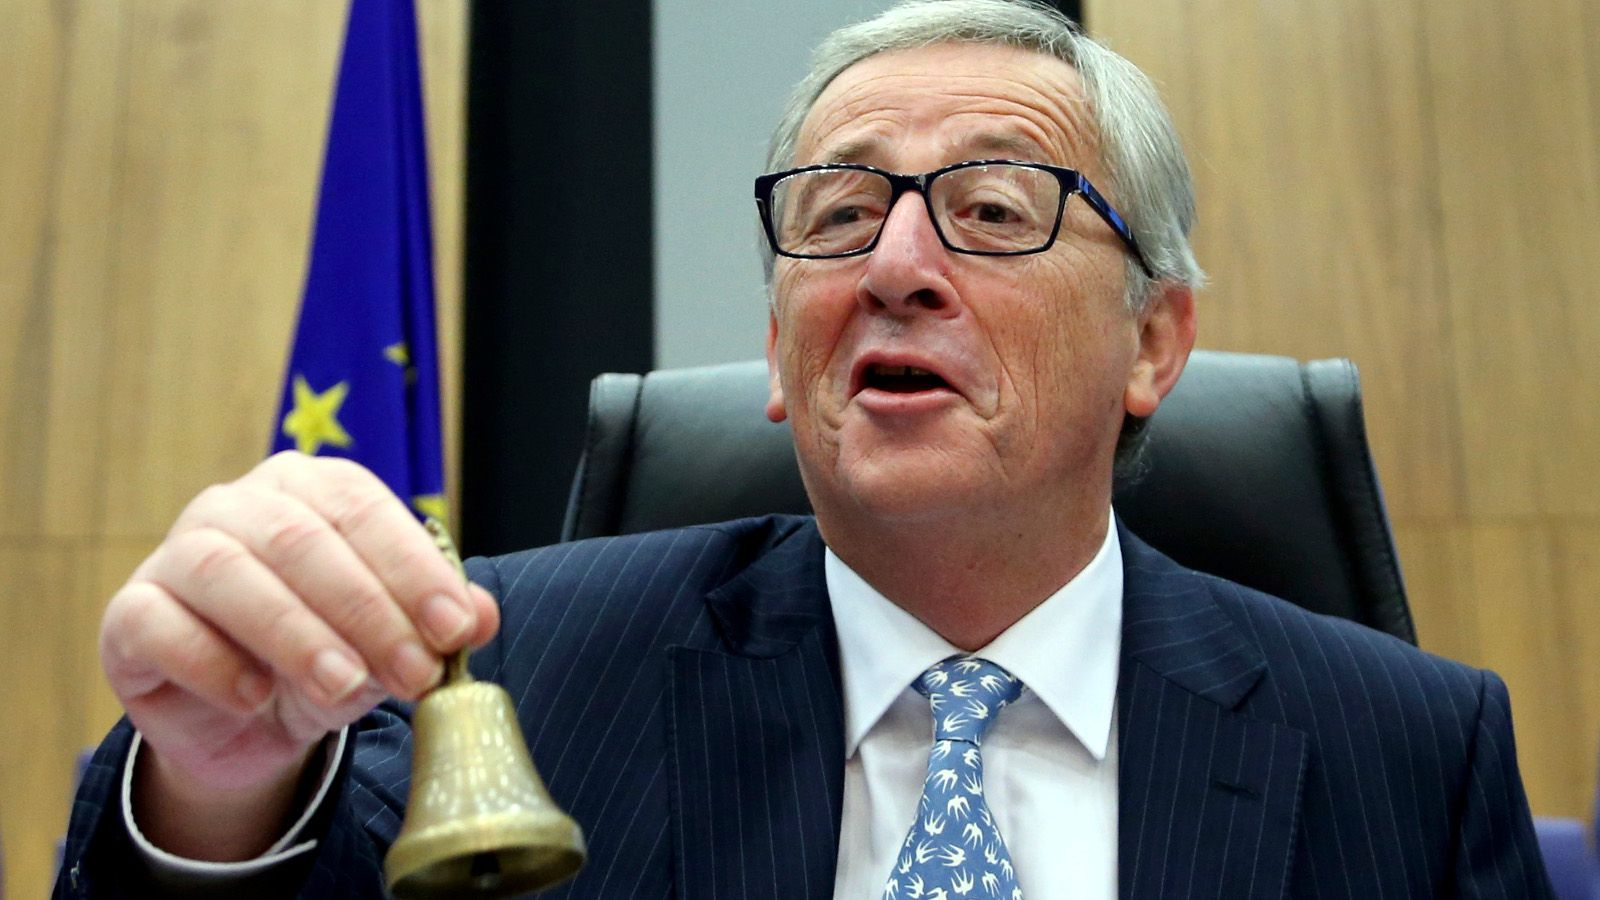 The European Commission's new President Jean-Claude Juncker rings the bell as he chairs the first official meeting of the EU's executive body at the EU Commission headquarters in Brussels November 5, 2014.